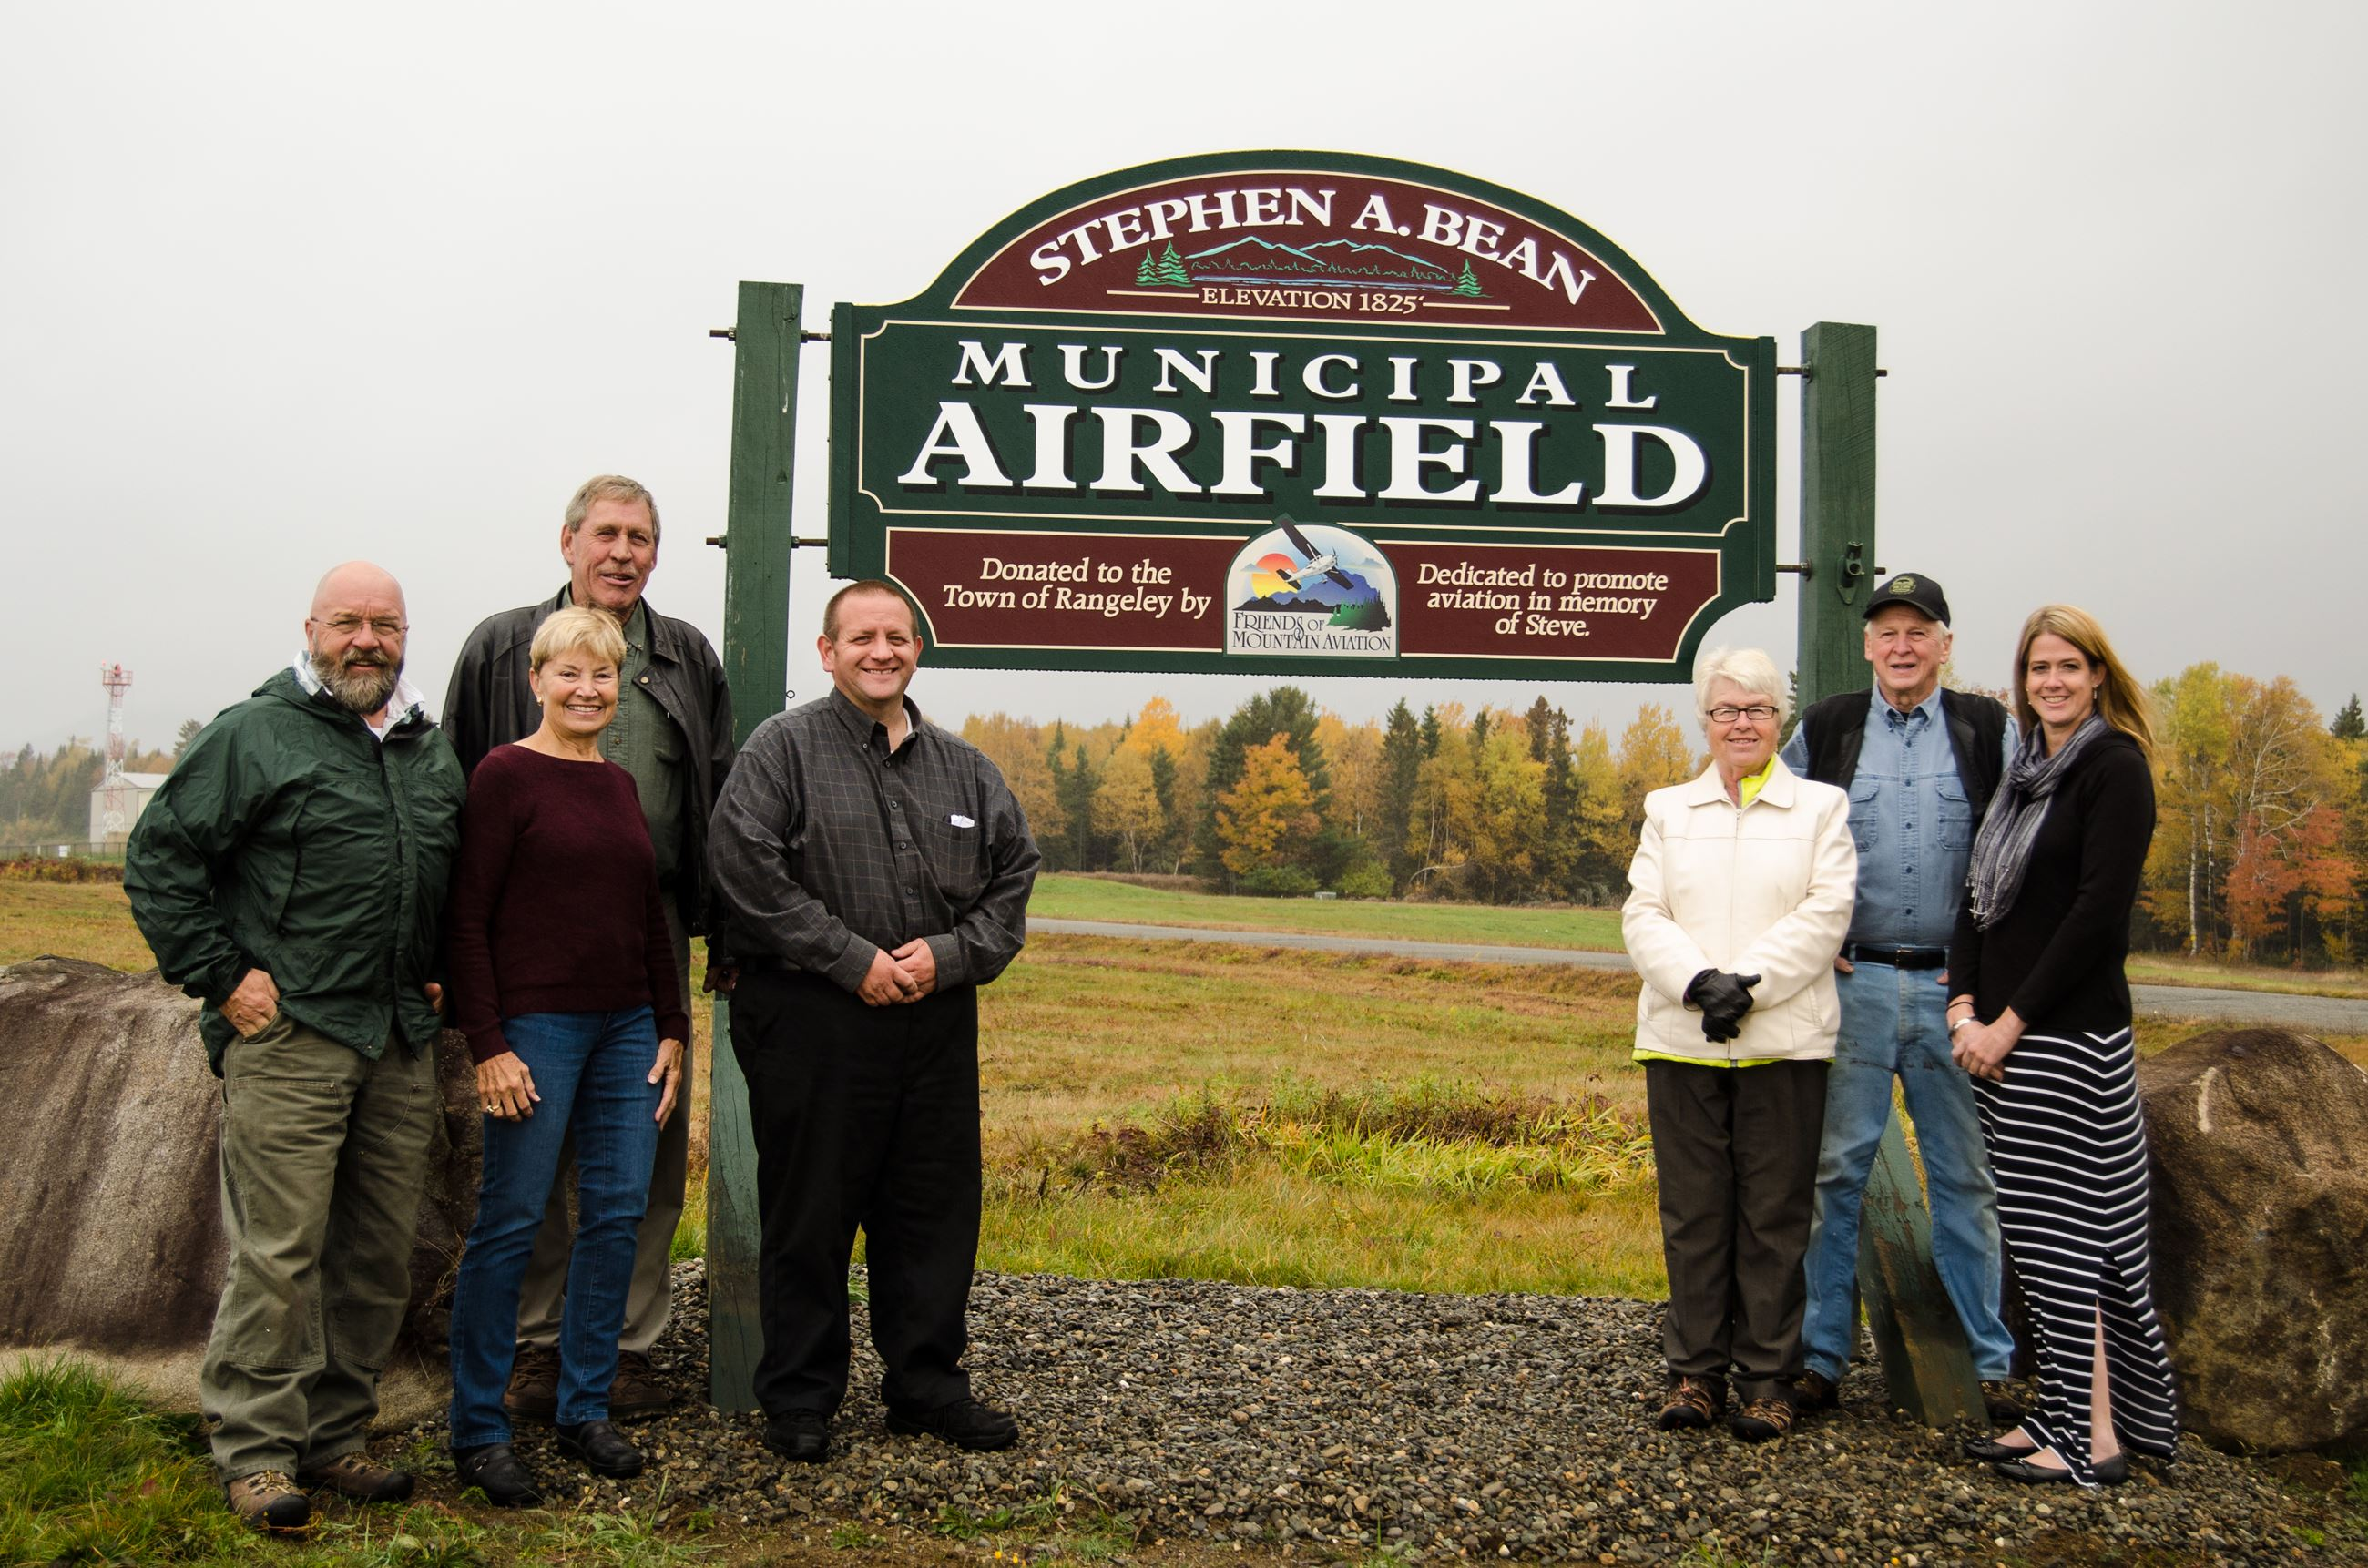 Airport Sign Dedication 10-14-15 (1 of 2)